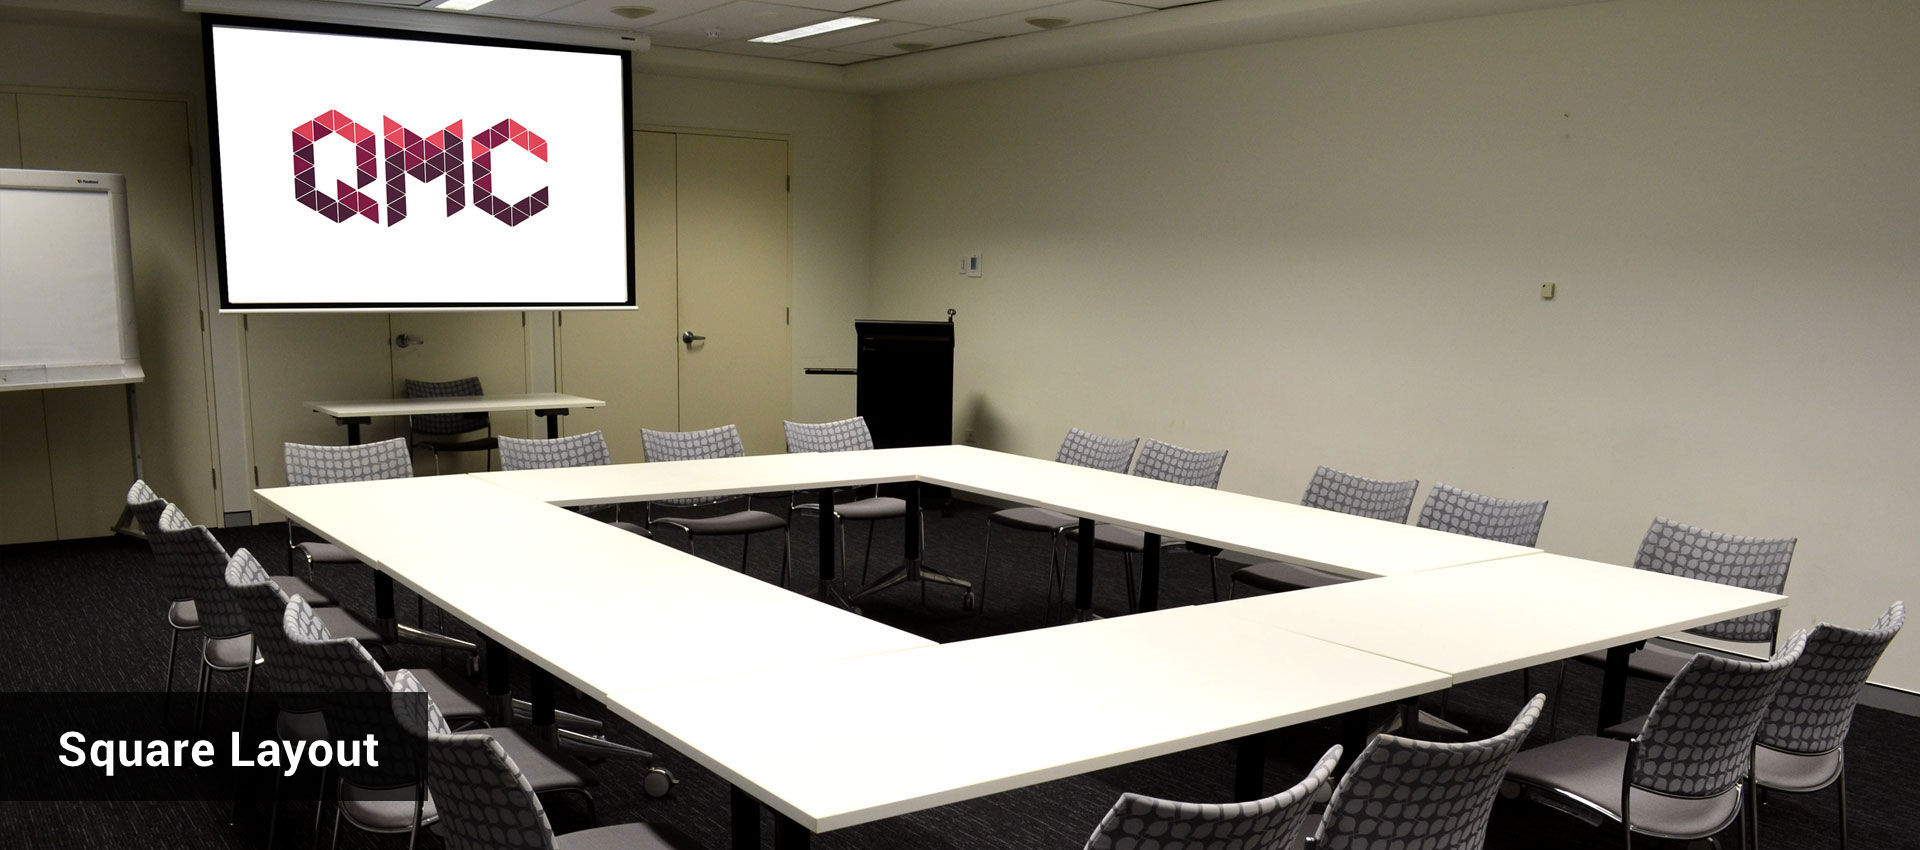 QMC Venue Hire Brisbane Multipurpose - Square